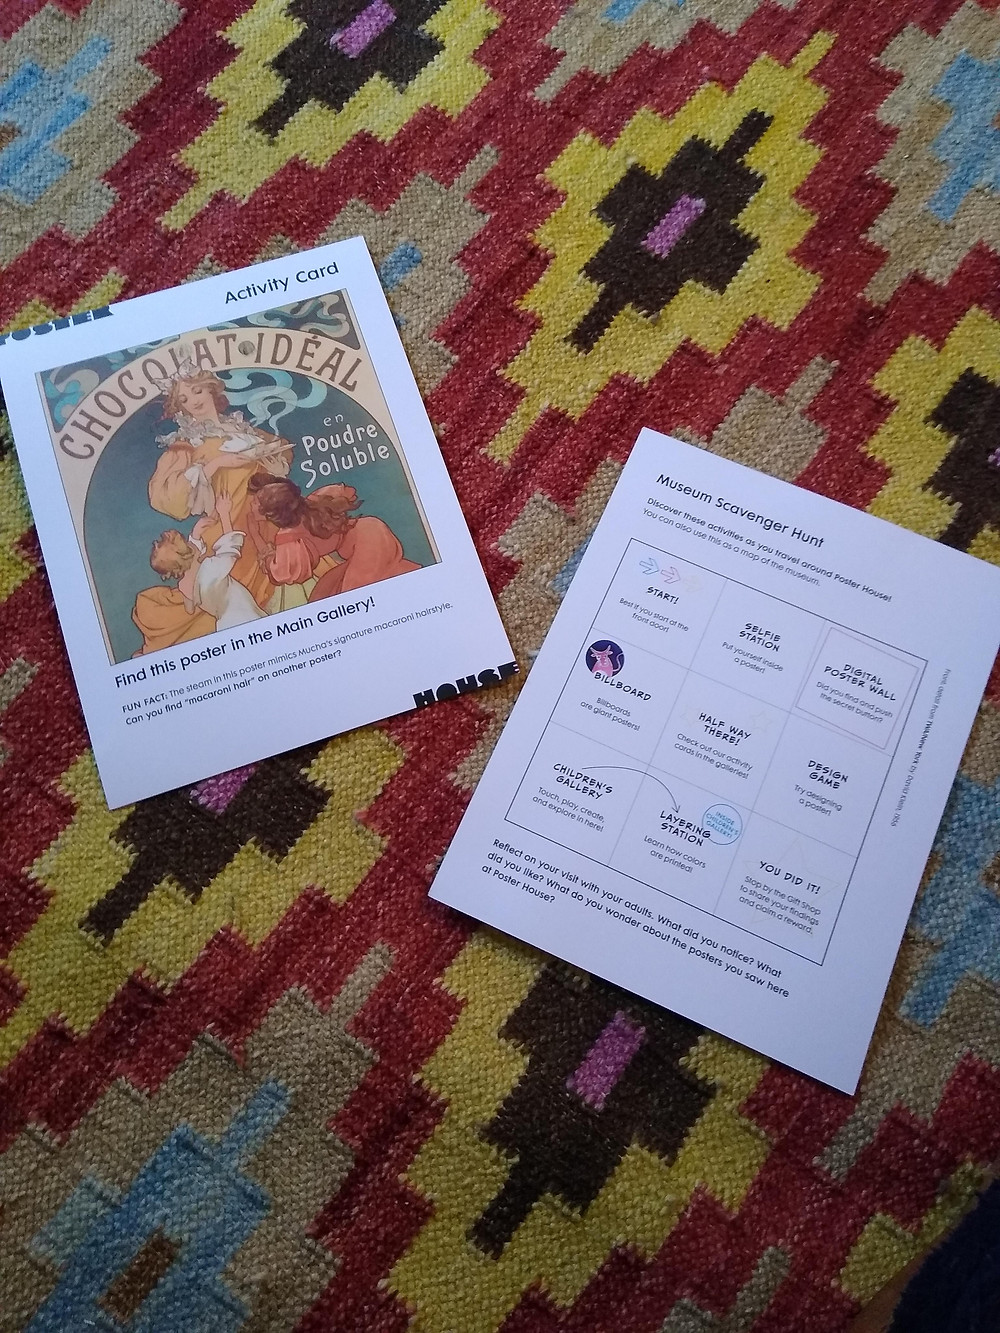 2 activity cards on carpet with zigzag design. Card on left has Mucha's chocolate poster and card on left has 3x3 grid